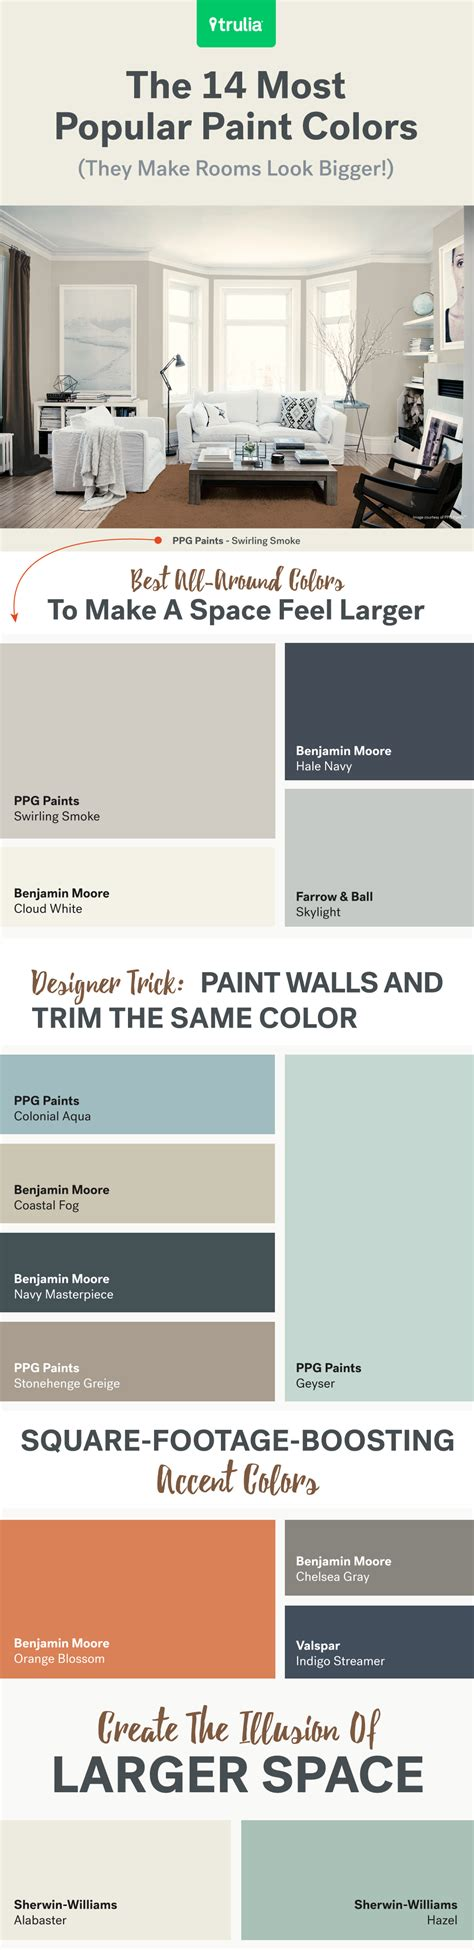 paint colors to make a room look brighter 14 popular paint colors for small rooms life at home trulia blog